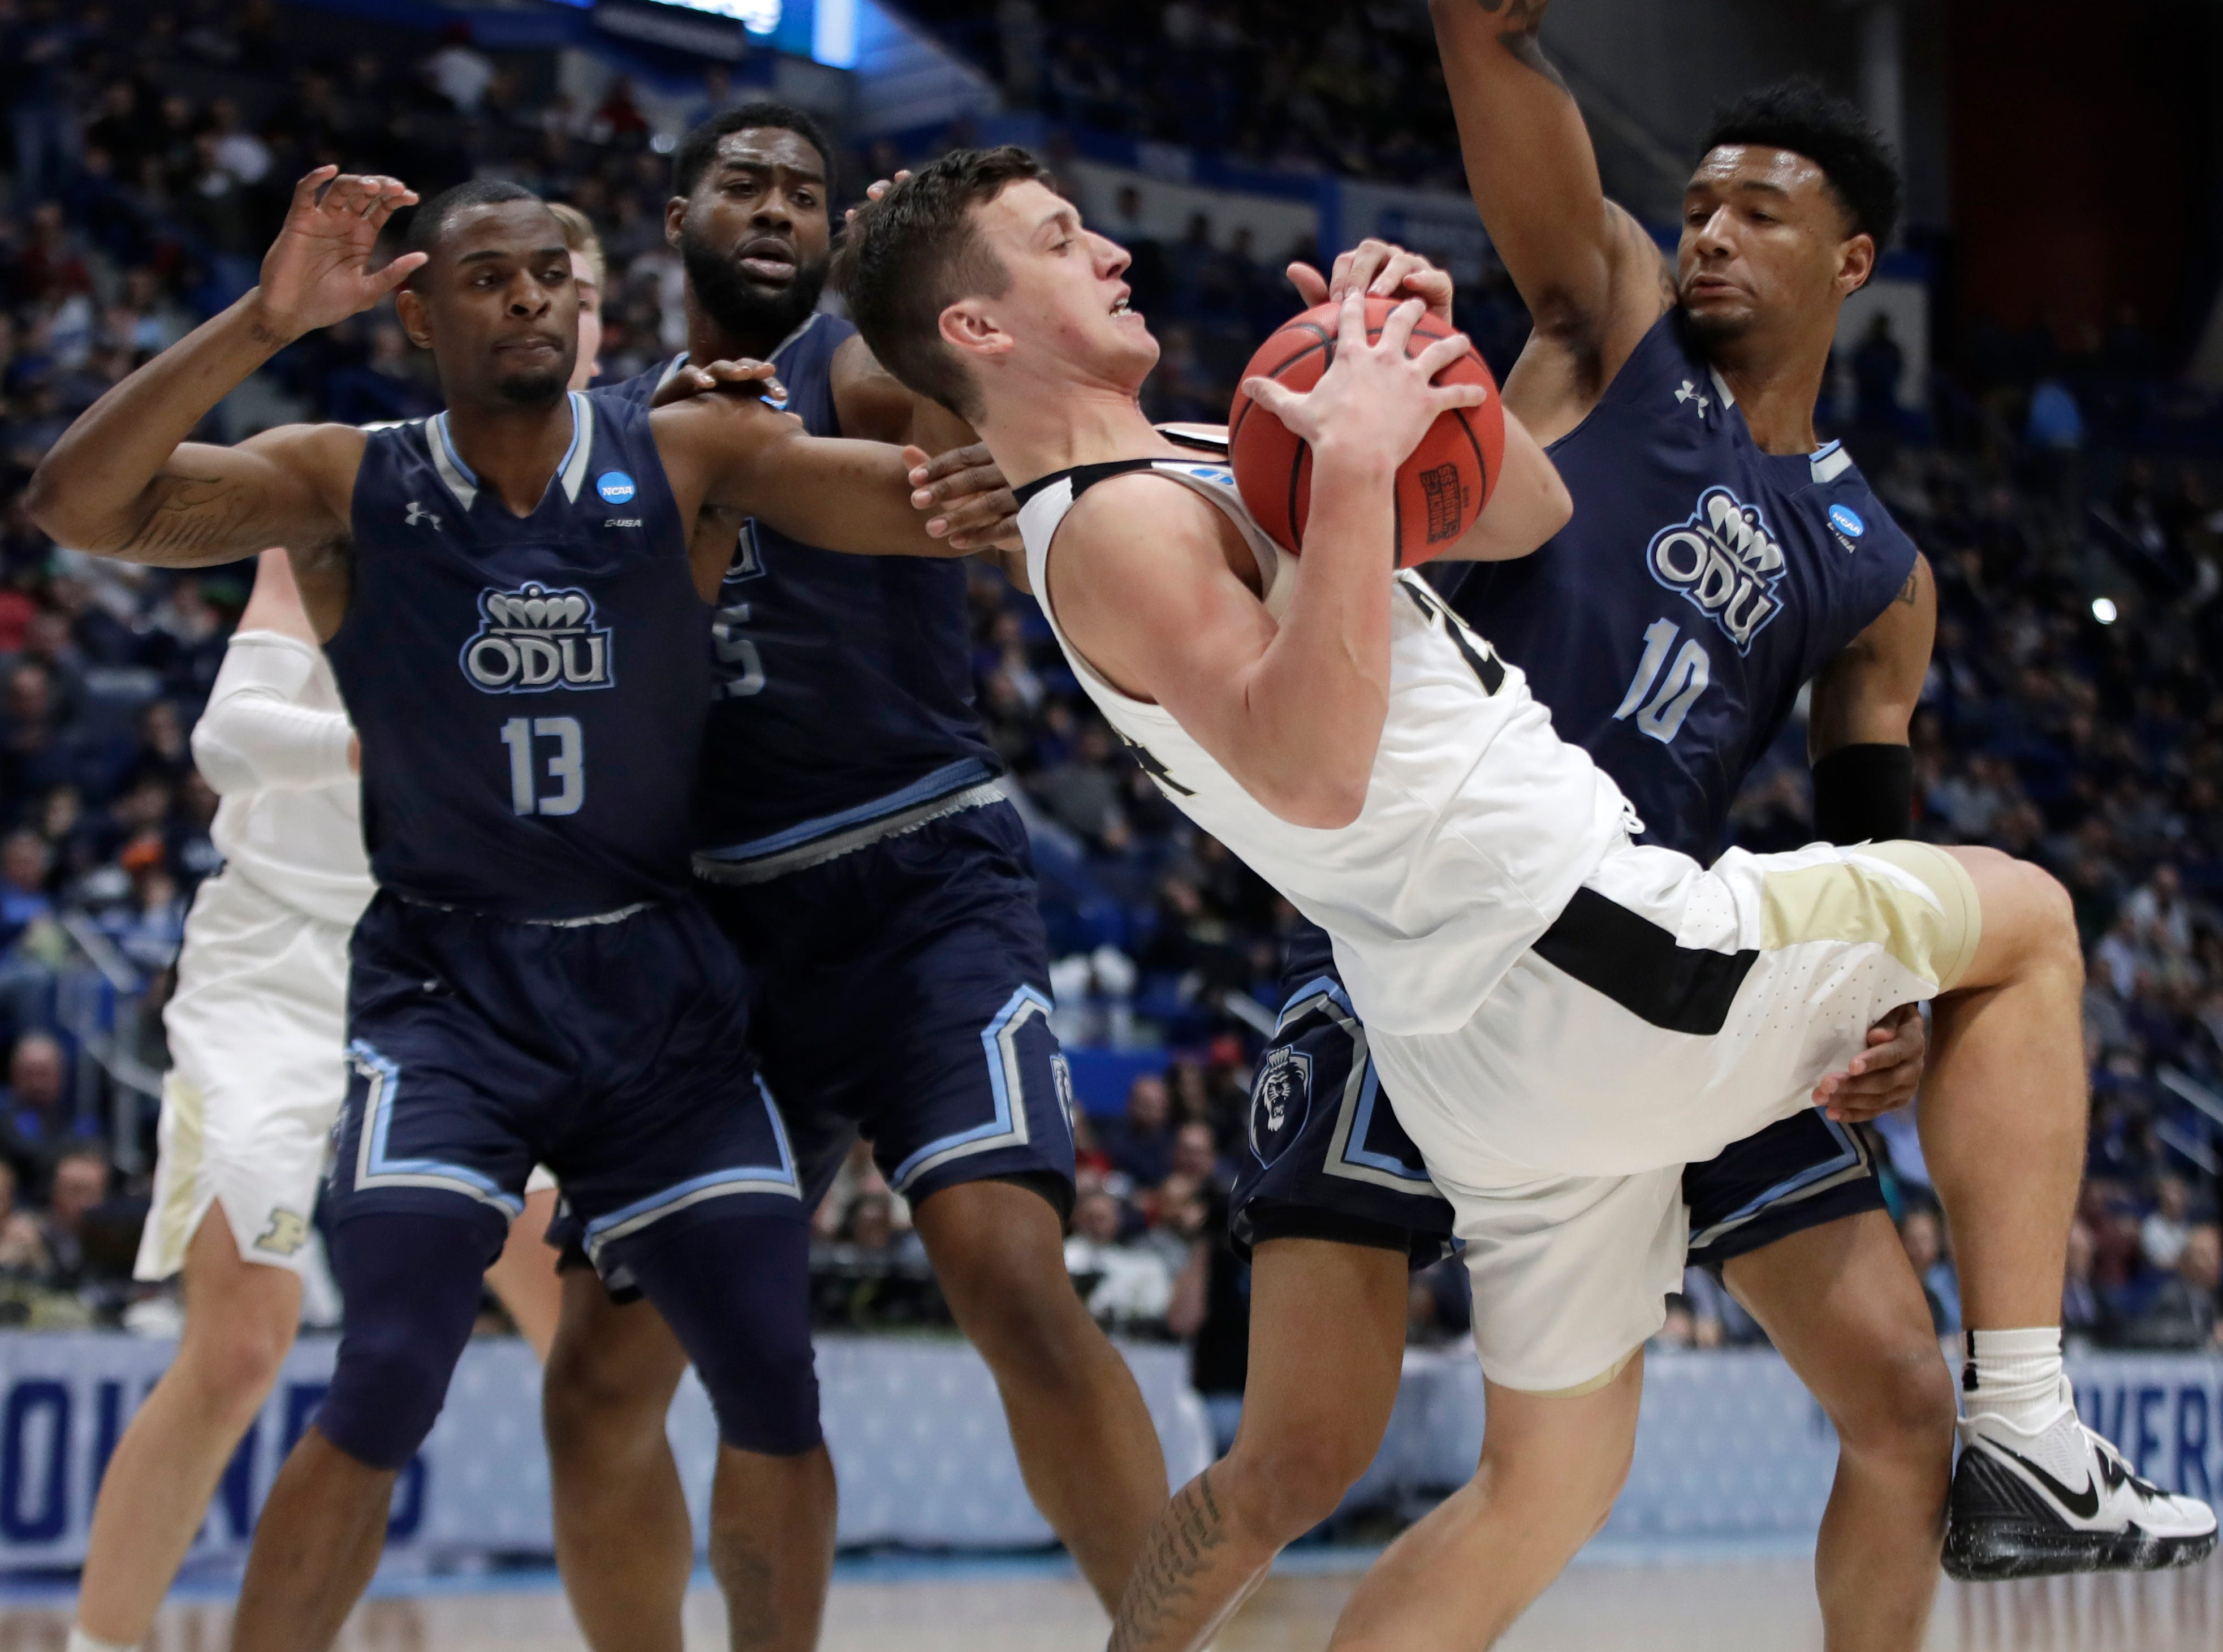 Purdue's Grady Eifert (24) pulls down and controls a rebound against Old Dominion's Aaron Carver (13), Joseph Reece (15) and Xavier Green (10) during the first half of a first round men's college basketball game in the NCAA Tournament, Thursday, March 21, 2019, in Hartford, Conn.